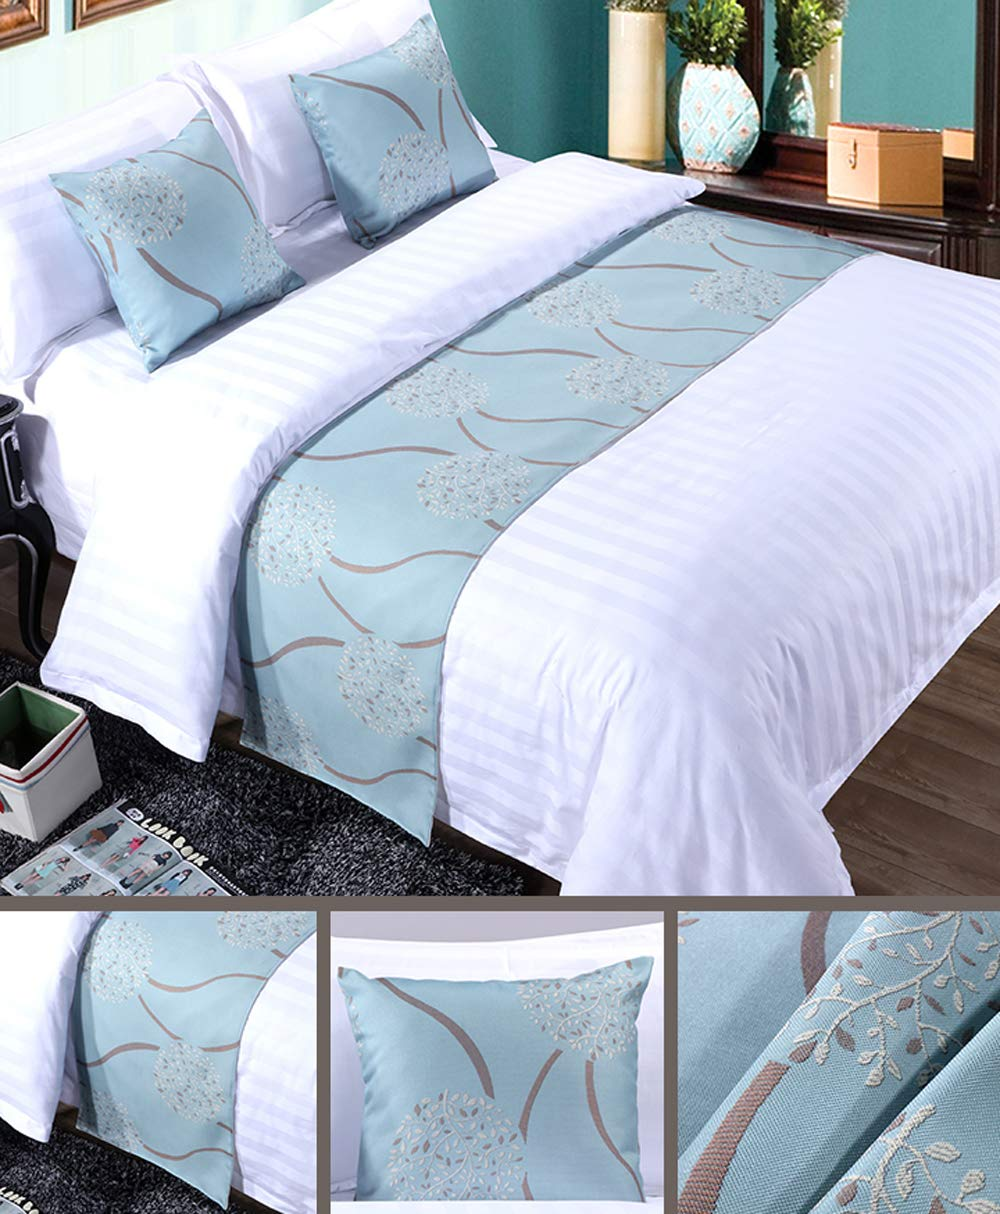 Mengersi Rippling Bed Runner Scarf Protector Slipcover Bed Decorative Scarf for Bedroom Hotel Wedding Room (King, Blue) by Mengersi (Image #2)